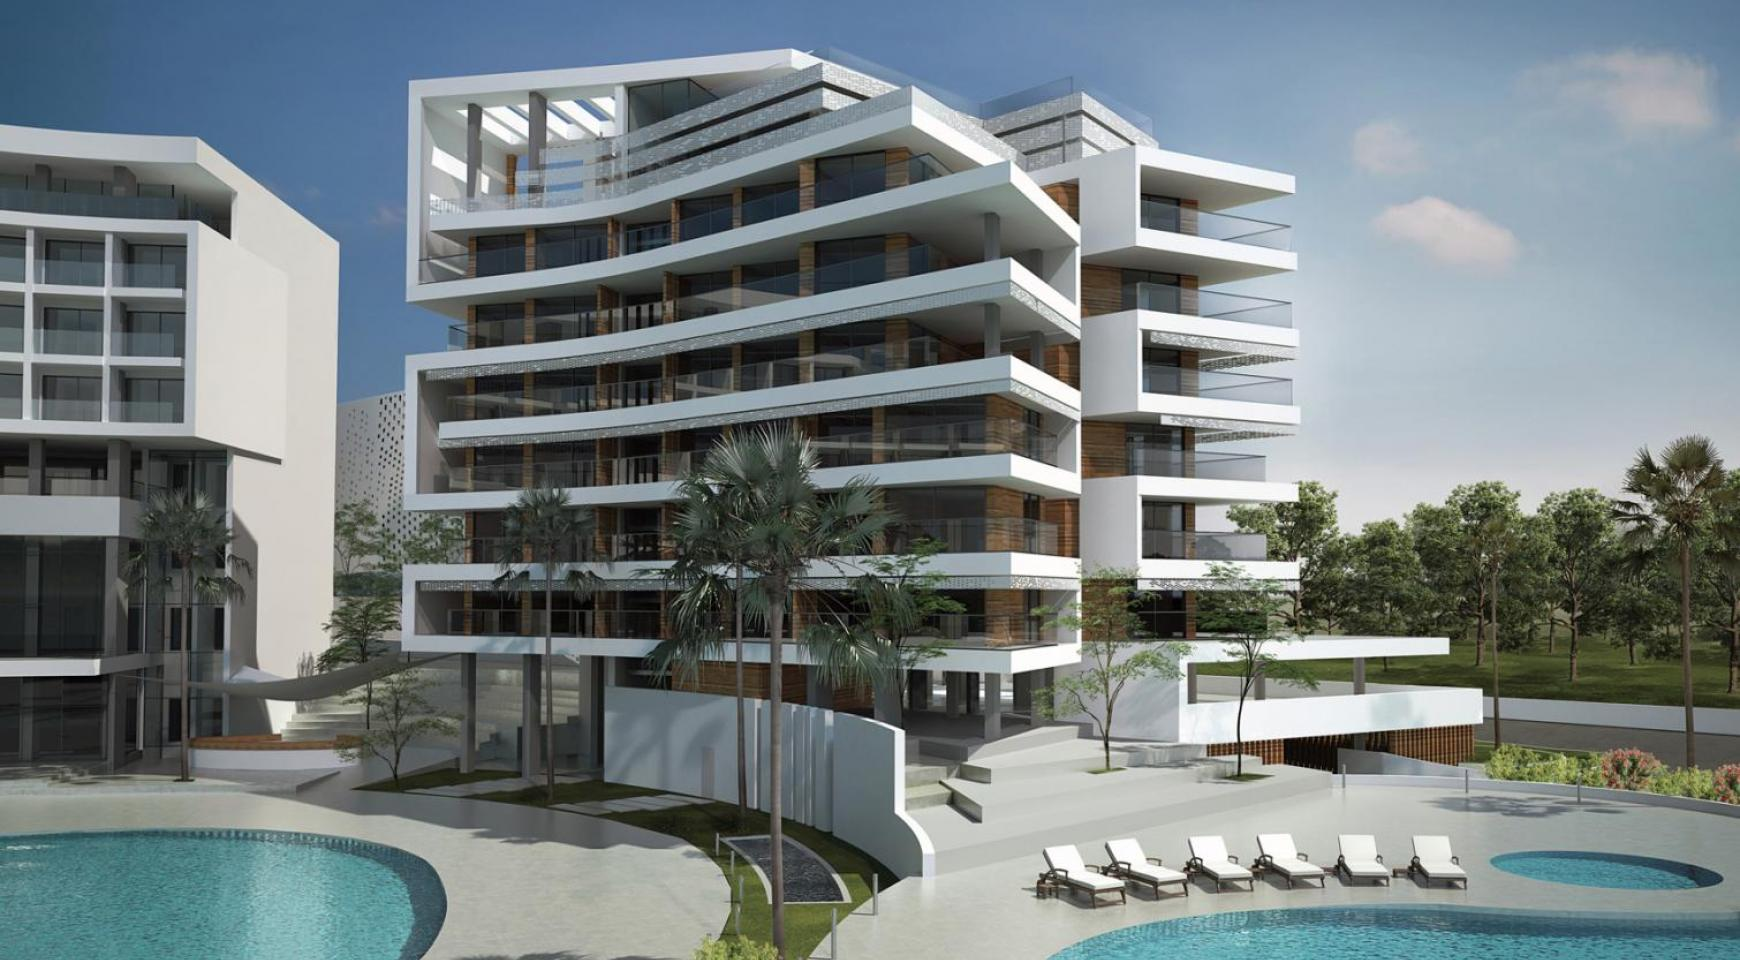 Contemporary One Bedroom Apartment in New Project by the Sea - 10